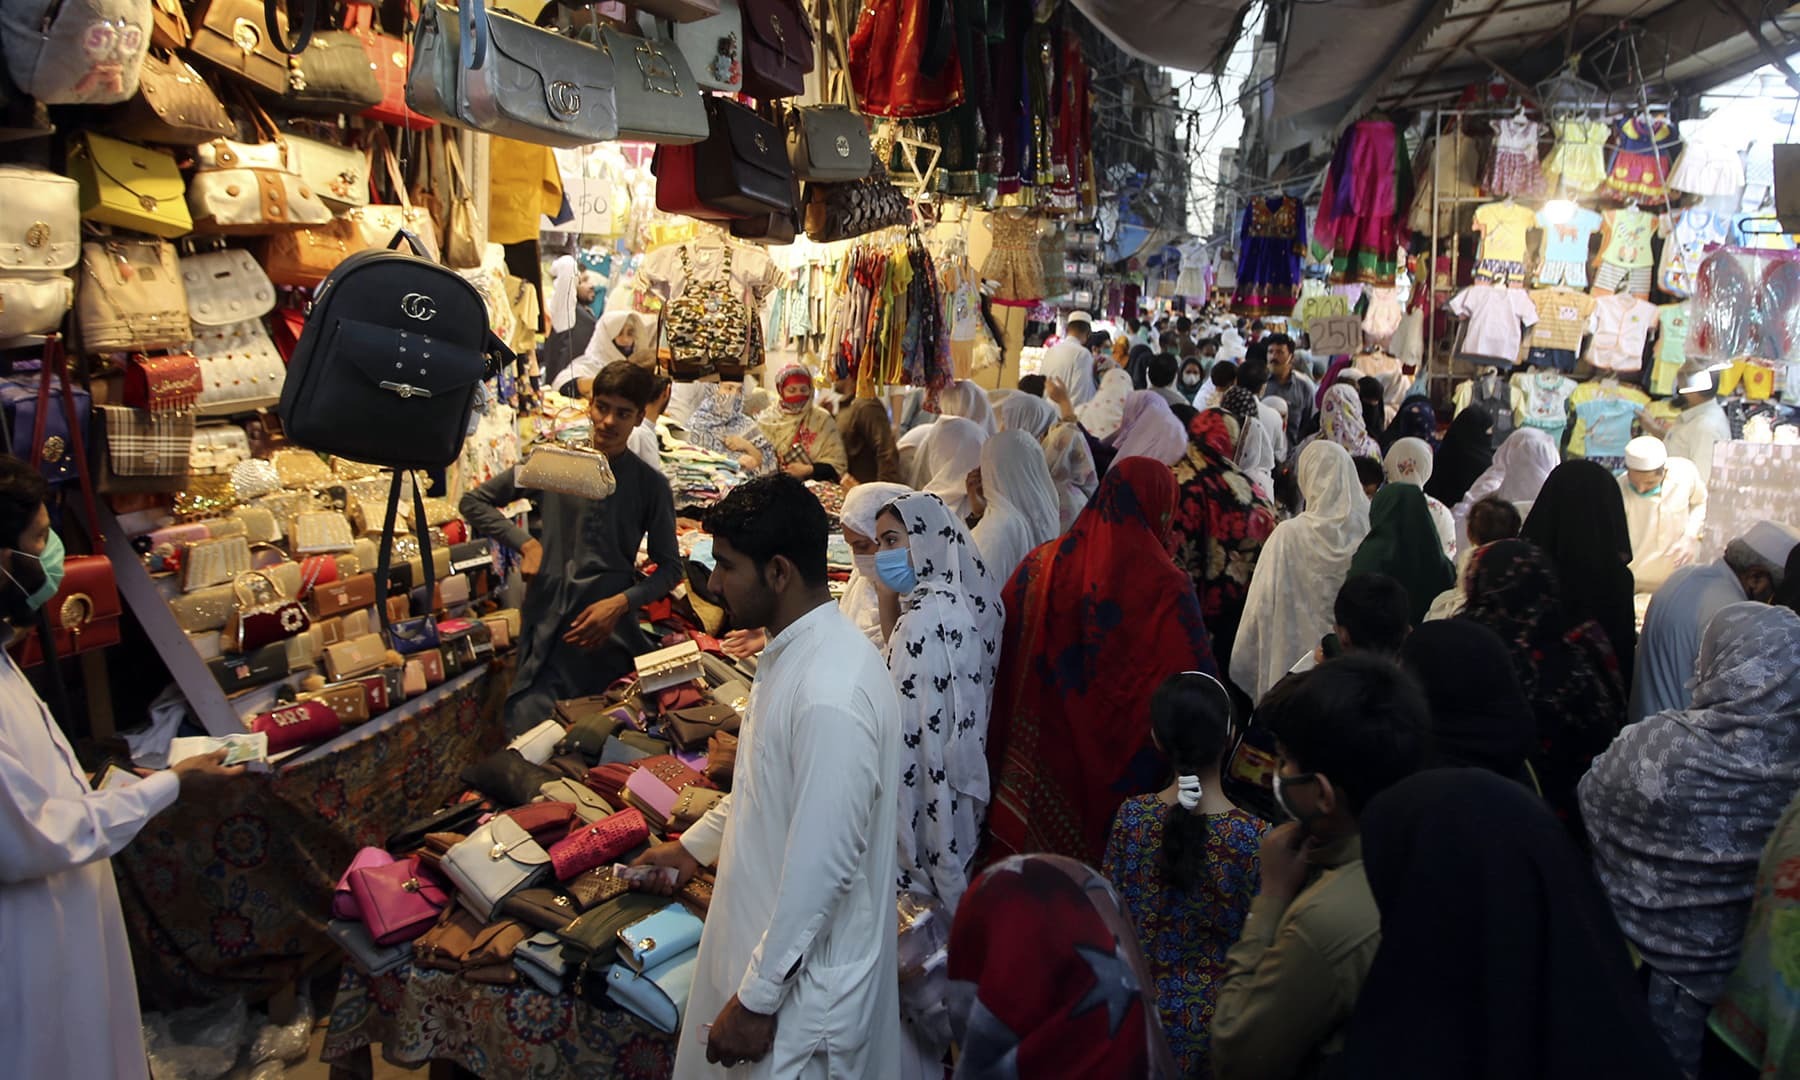 People shop in a market after the government relaxed the weeks-long lockdown in Peshawar on Monday, May 11. — AP